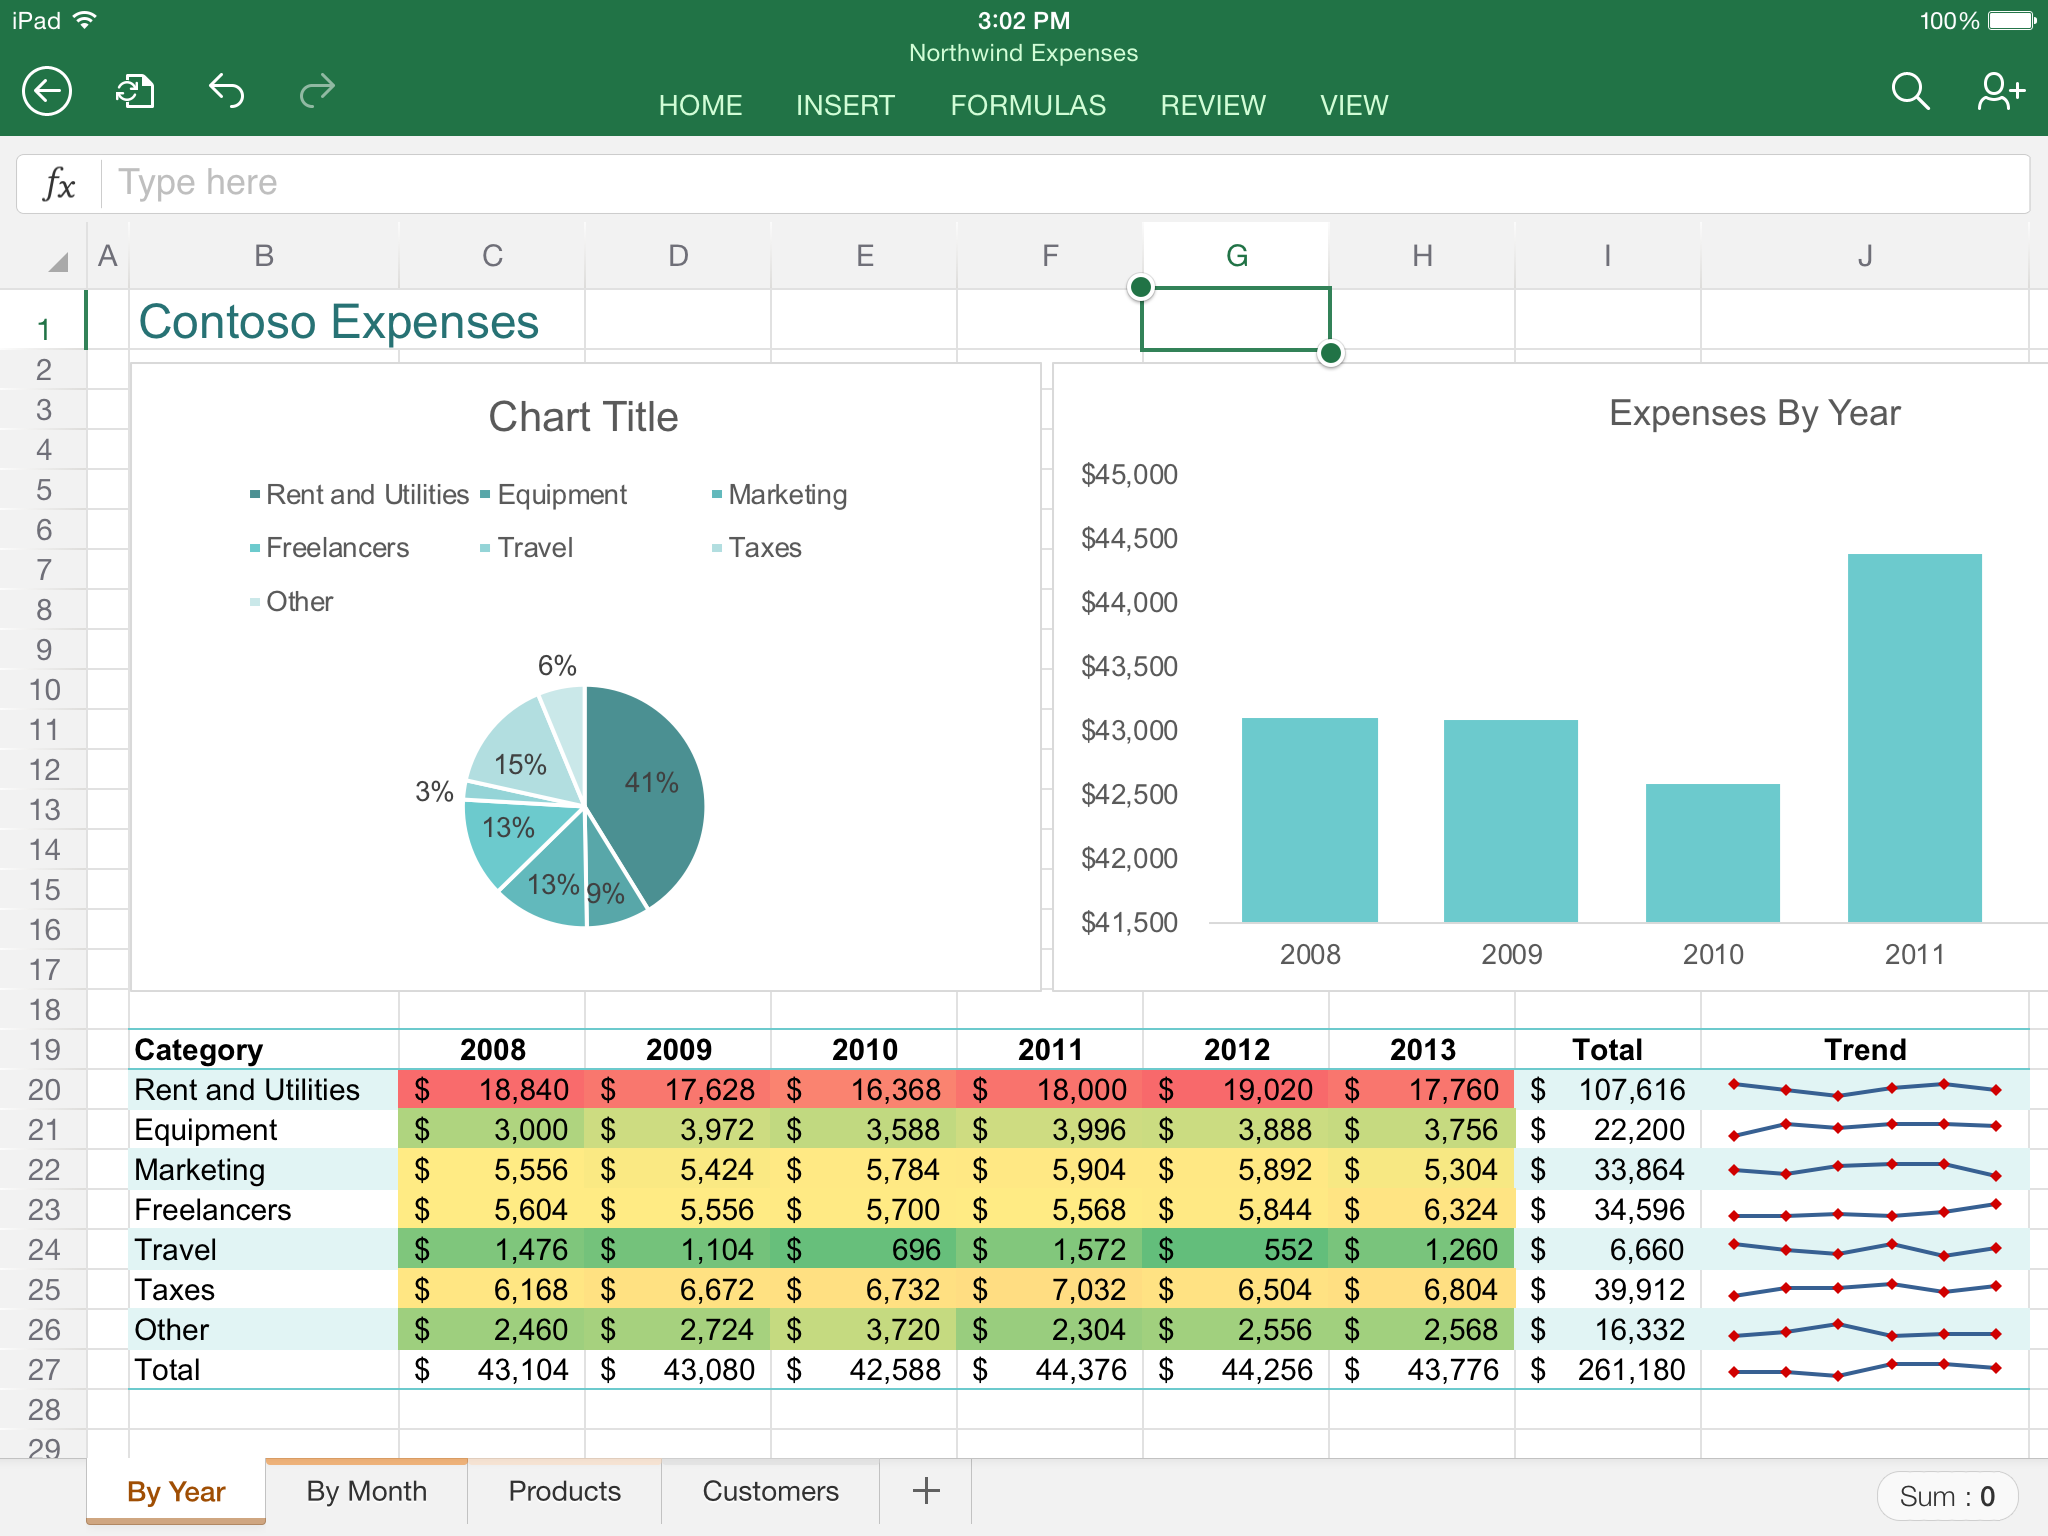 Ediblewildsus  Marvelous App Highlight Excel  Mobile Digital Now With Goodlooking Excel In Action With Delectable How To Autofill Numbers In Excel Also Merge And Center In Excel  In Addition Stacked Bar Chart Excel And How To Do Standard Deviation In Excel As Well As Left Excel Additionally Excel Data Analysis Toolpak From Youstonybrookedu With Ediblewildsus  Goodlooking App Highlight Excel  Mobile Digital Now With Delectable Excel In Action And Marvelous How To Autofill Numbers In Excel Also Merge And Center In Excel  In Addition Stacked Bar Chart Excel From Youstonybrookedu